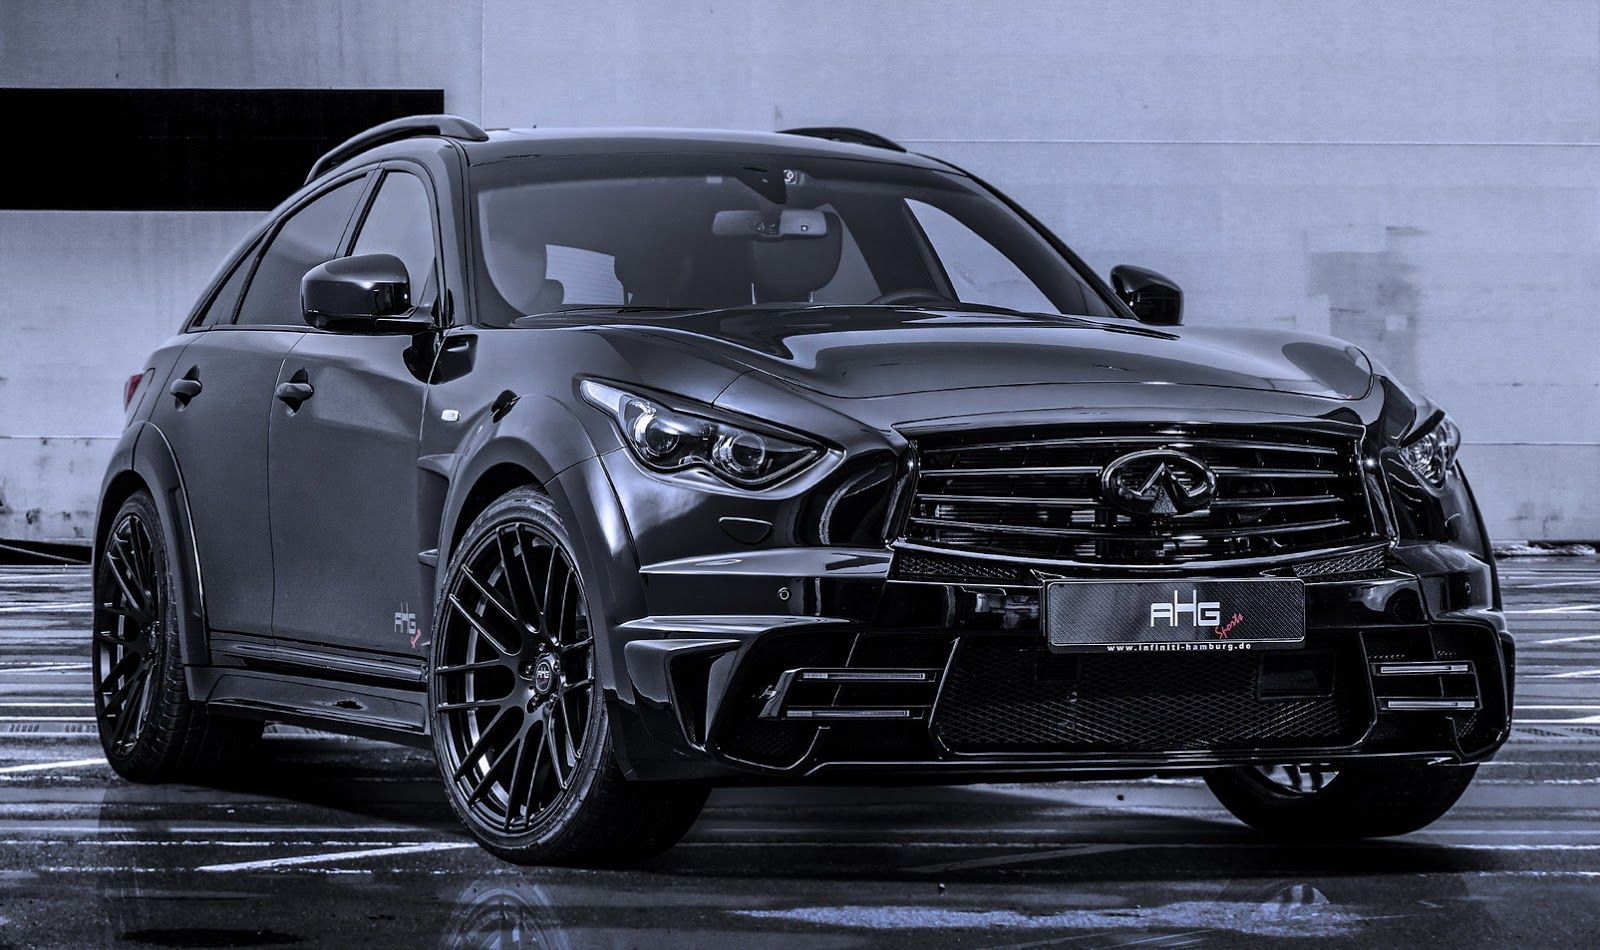 AHGSports' Menacing Infiniti QX70 LR3Wide Body